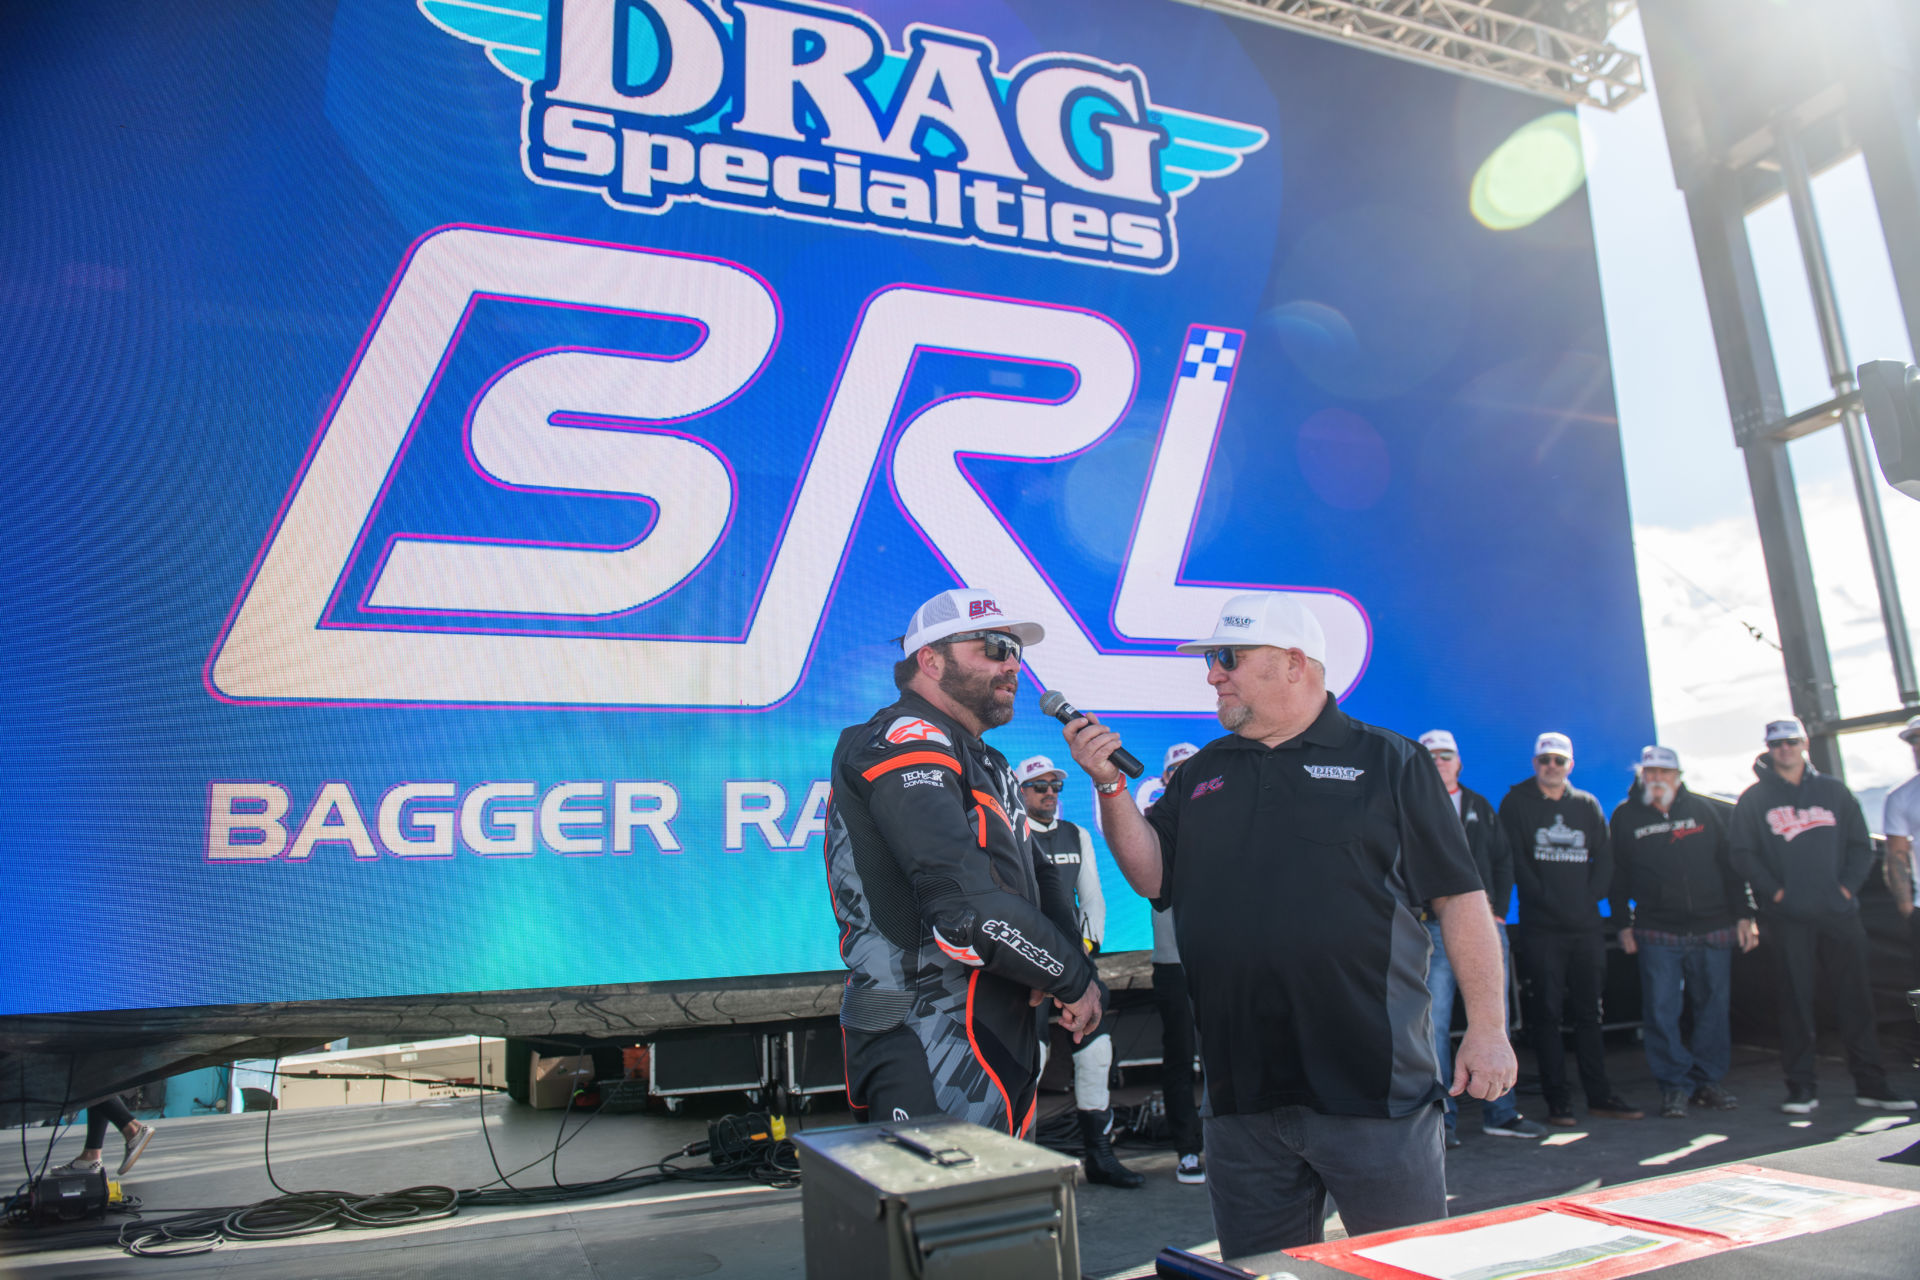 Bagger Racing League founder Rob Buydos interviews a rider at the BRL announcement event at Chuckwalla Valley Raceway. Photo by Justin George, courtesy BRL.